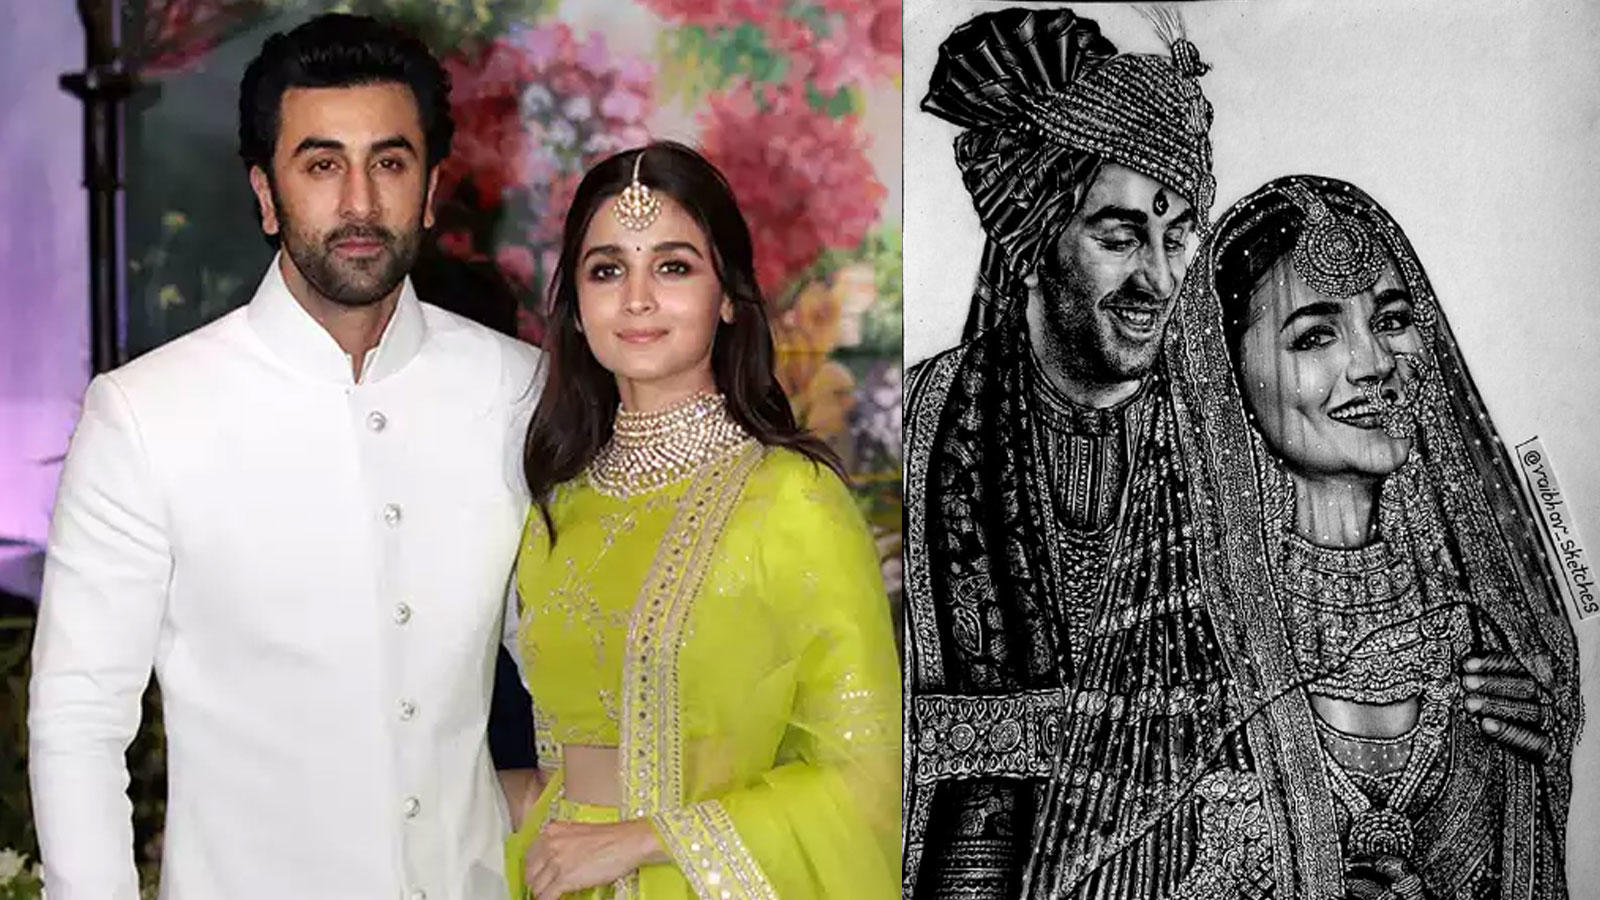 alia-bhatt-and-ranbir-kapoors-fan-makes-sketch-of-how-the-couple-would-look-like-on-their-wedding